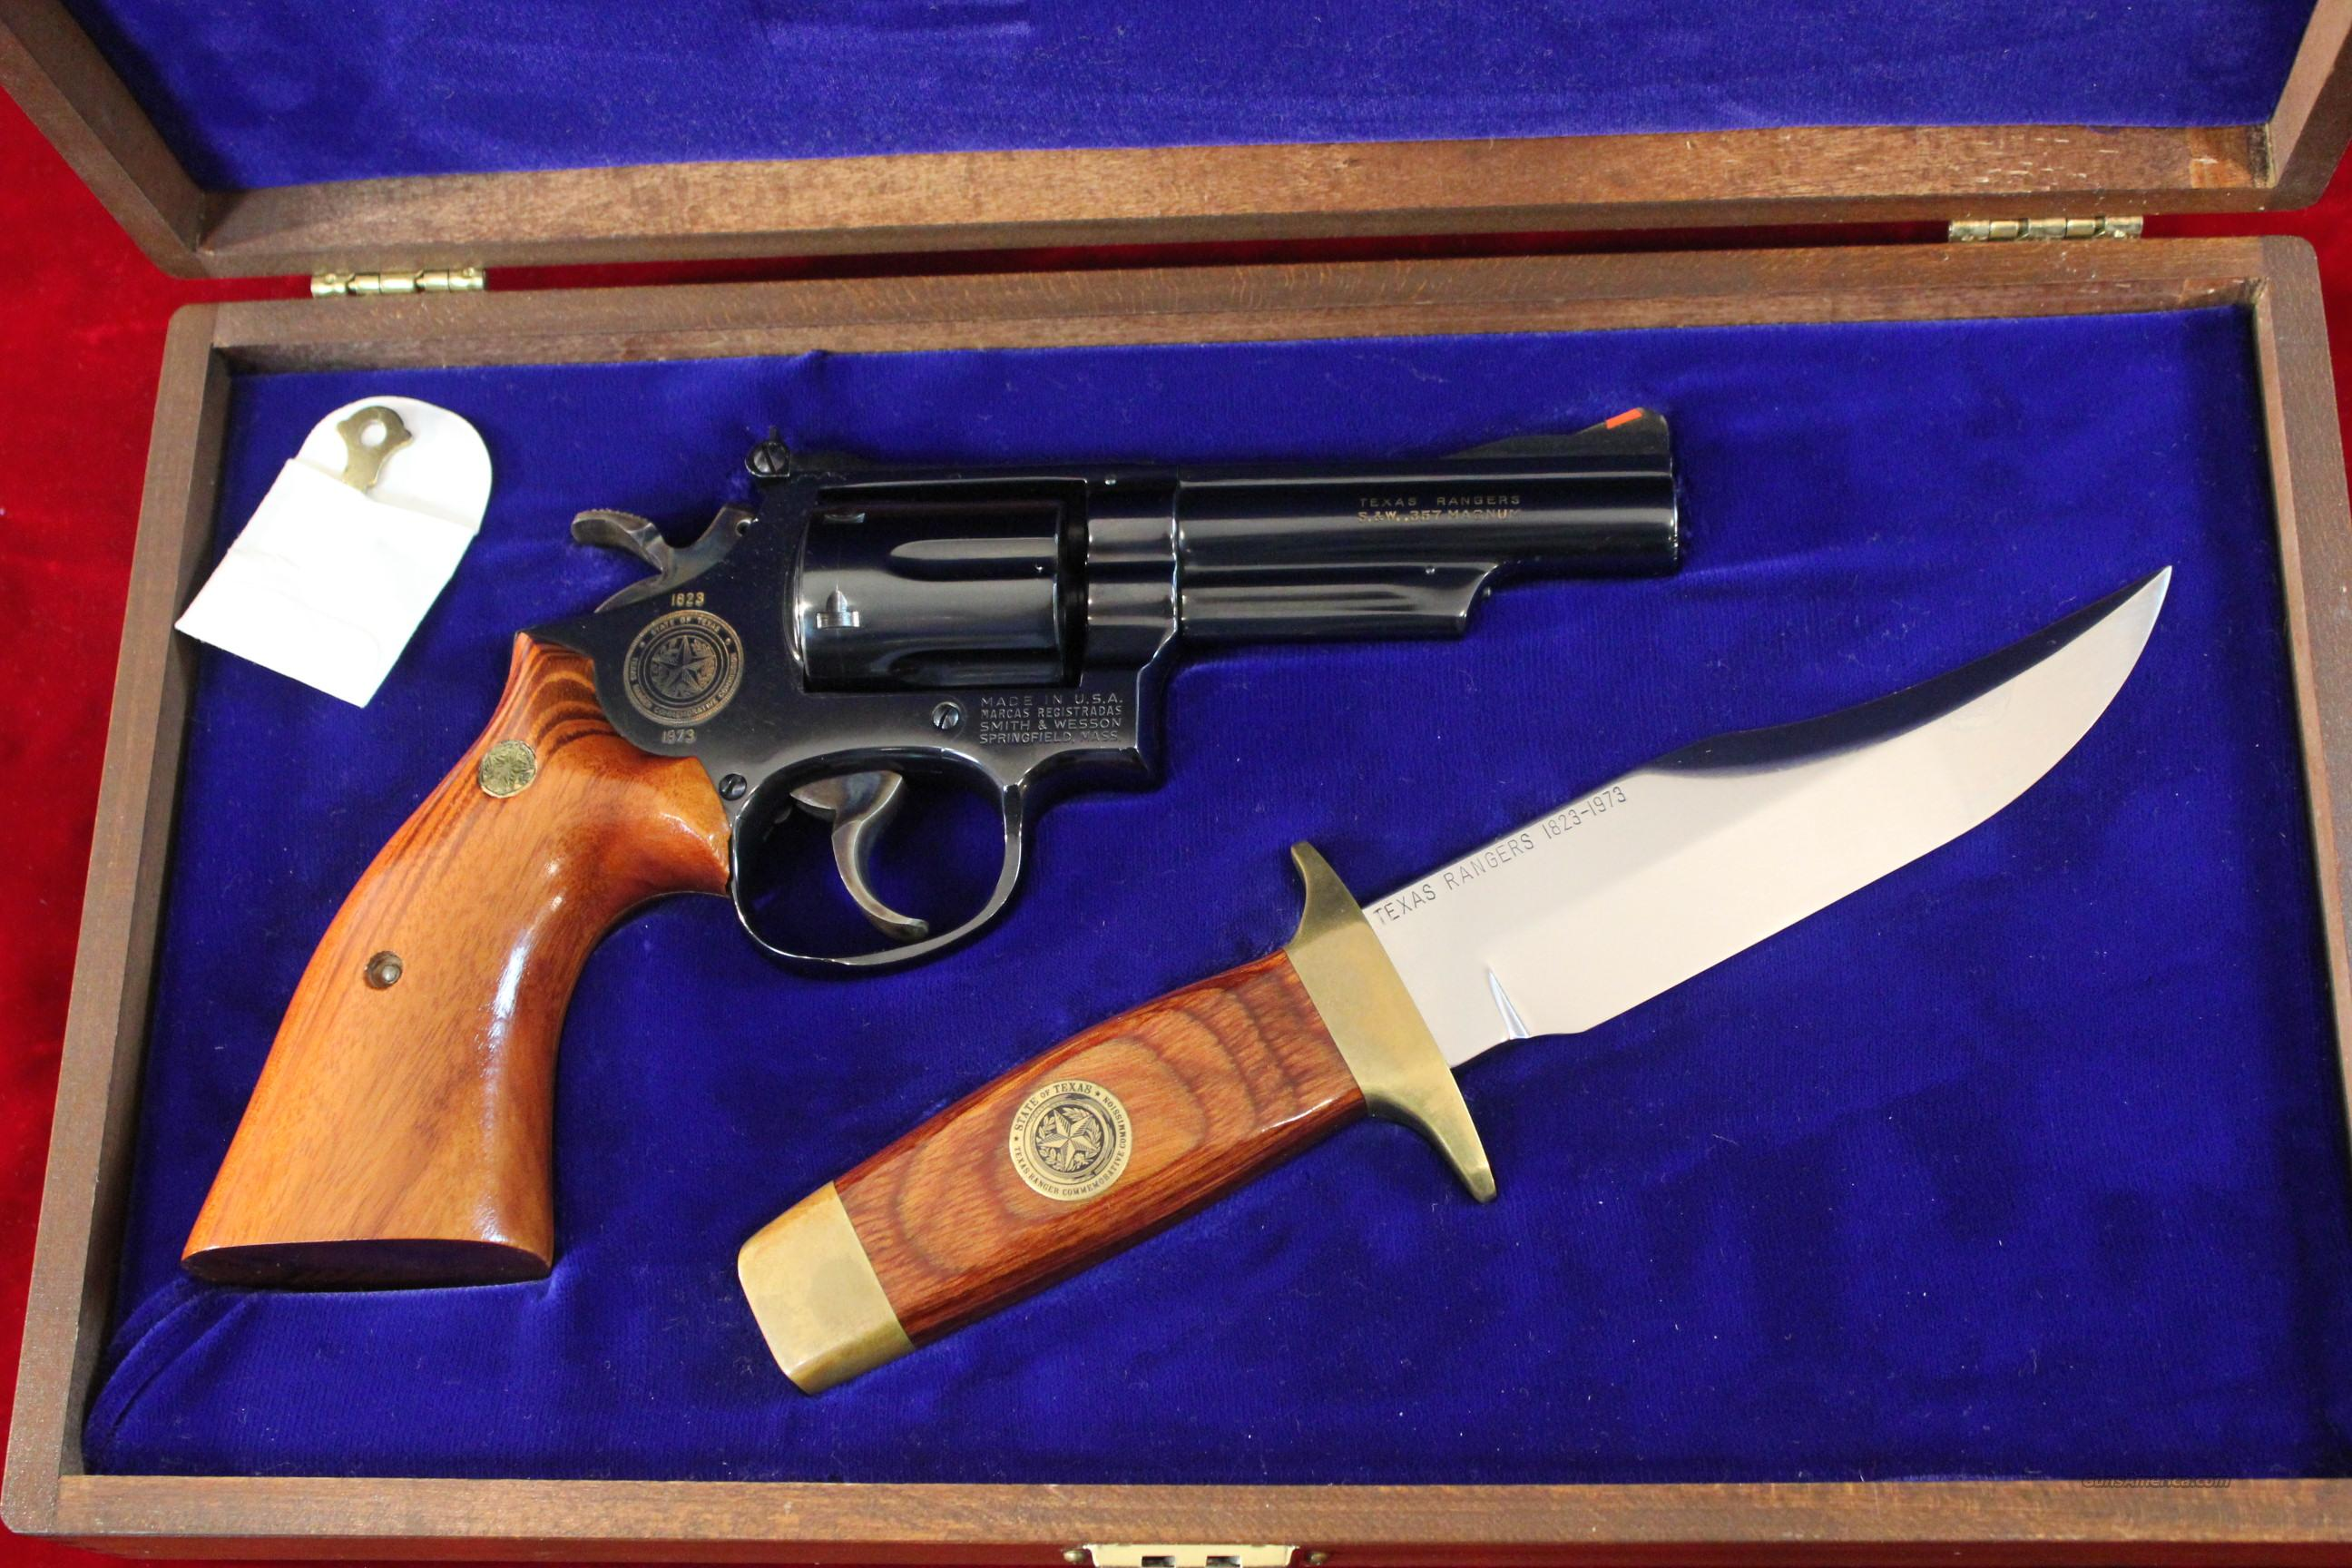 Smith & Wesson Texas Ranger Commemorative w/Knife & Case  Guns > Pistols > Smith & Wesson Revolvers > Full Frame Revolver